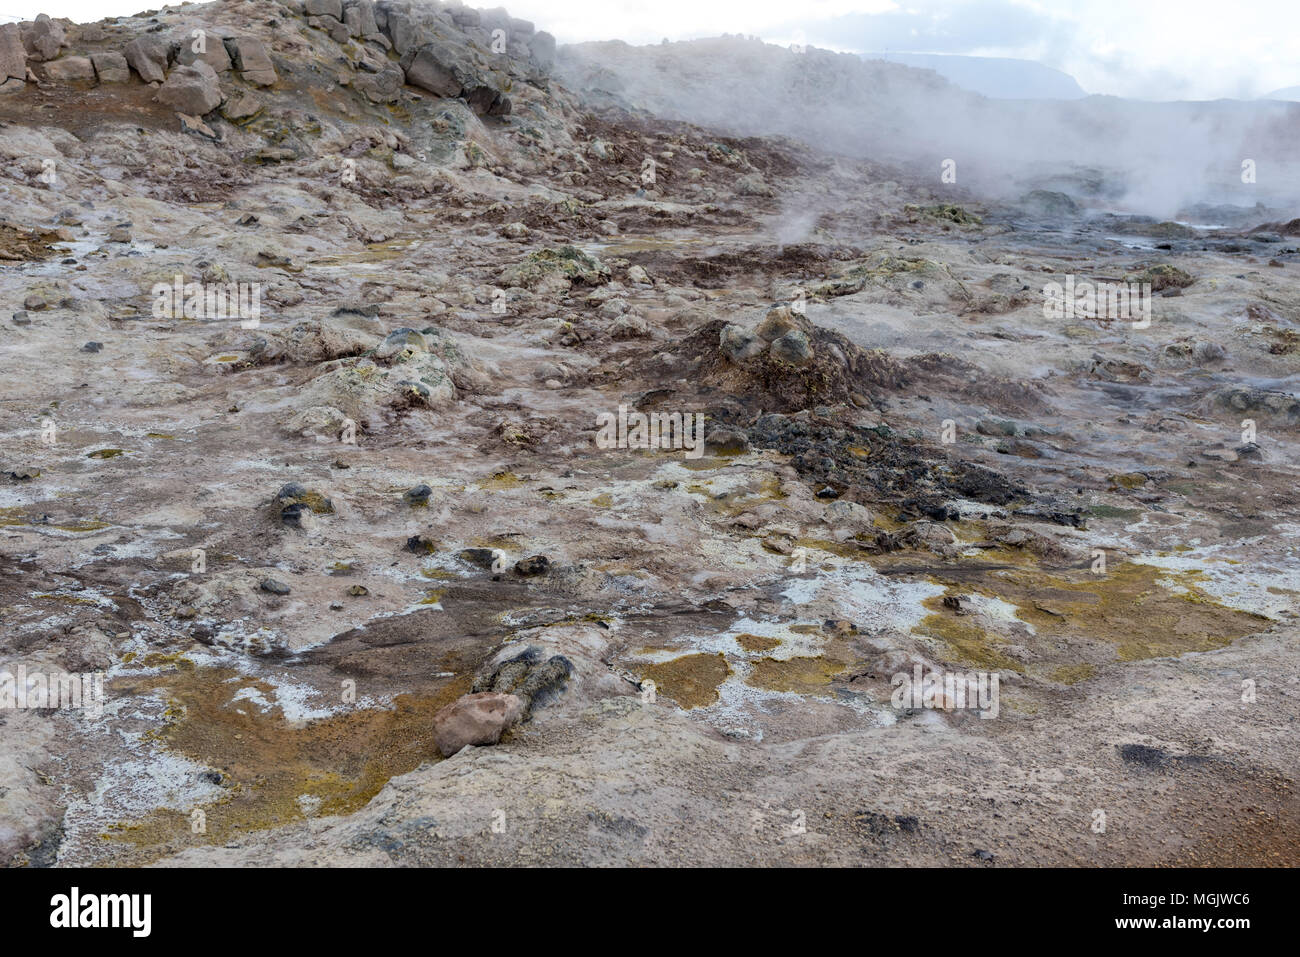 Hverir, rocks and sulfur landscape - Stock Image